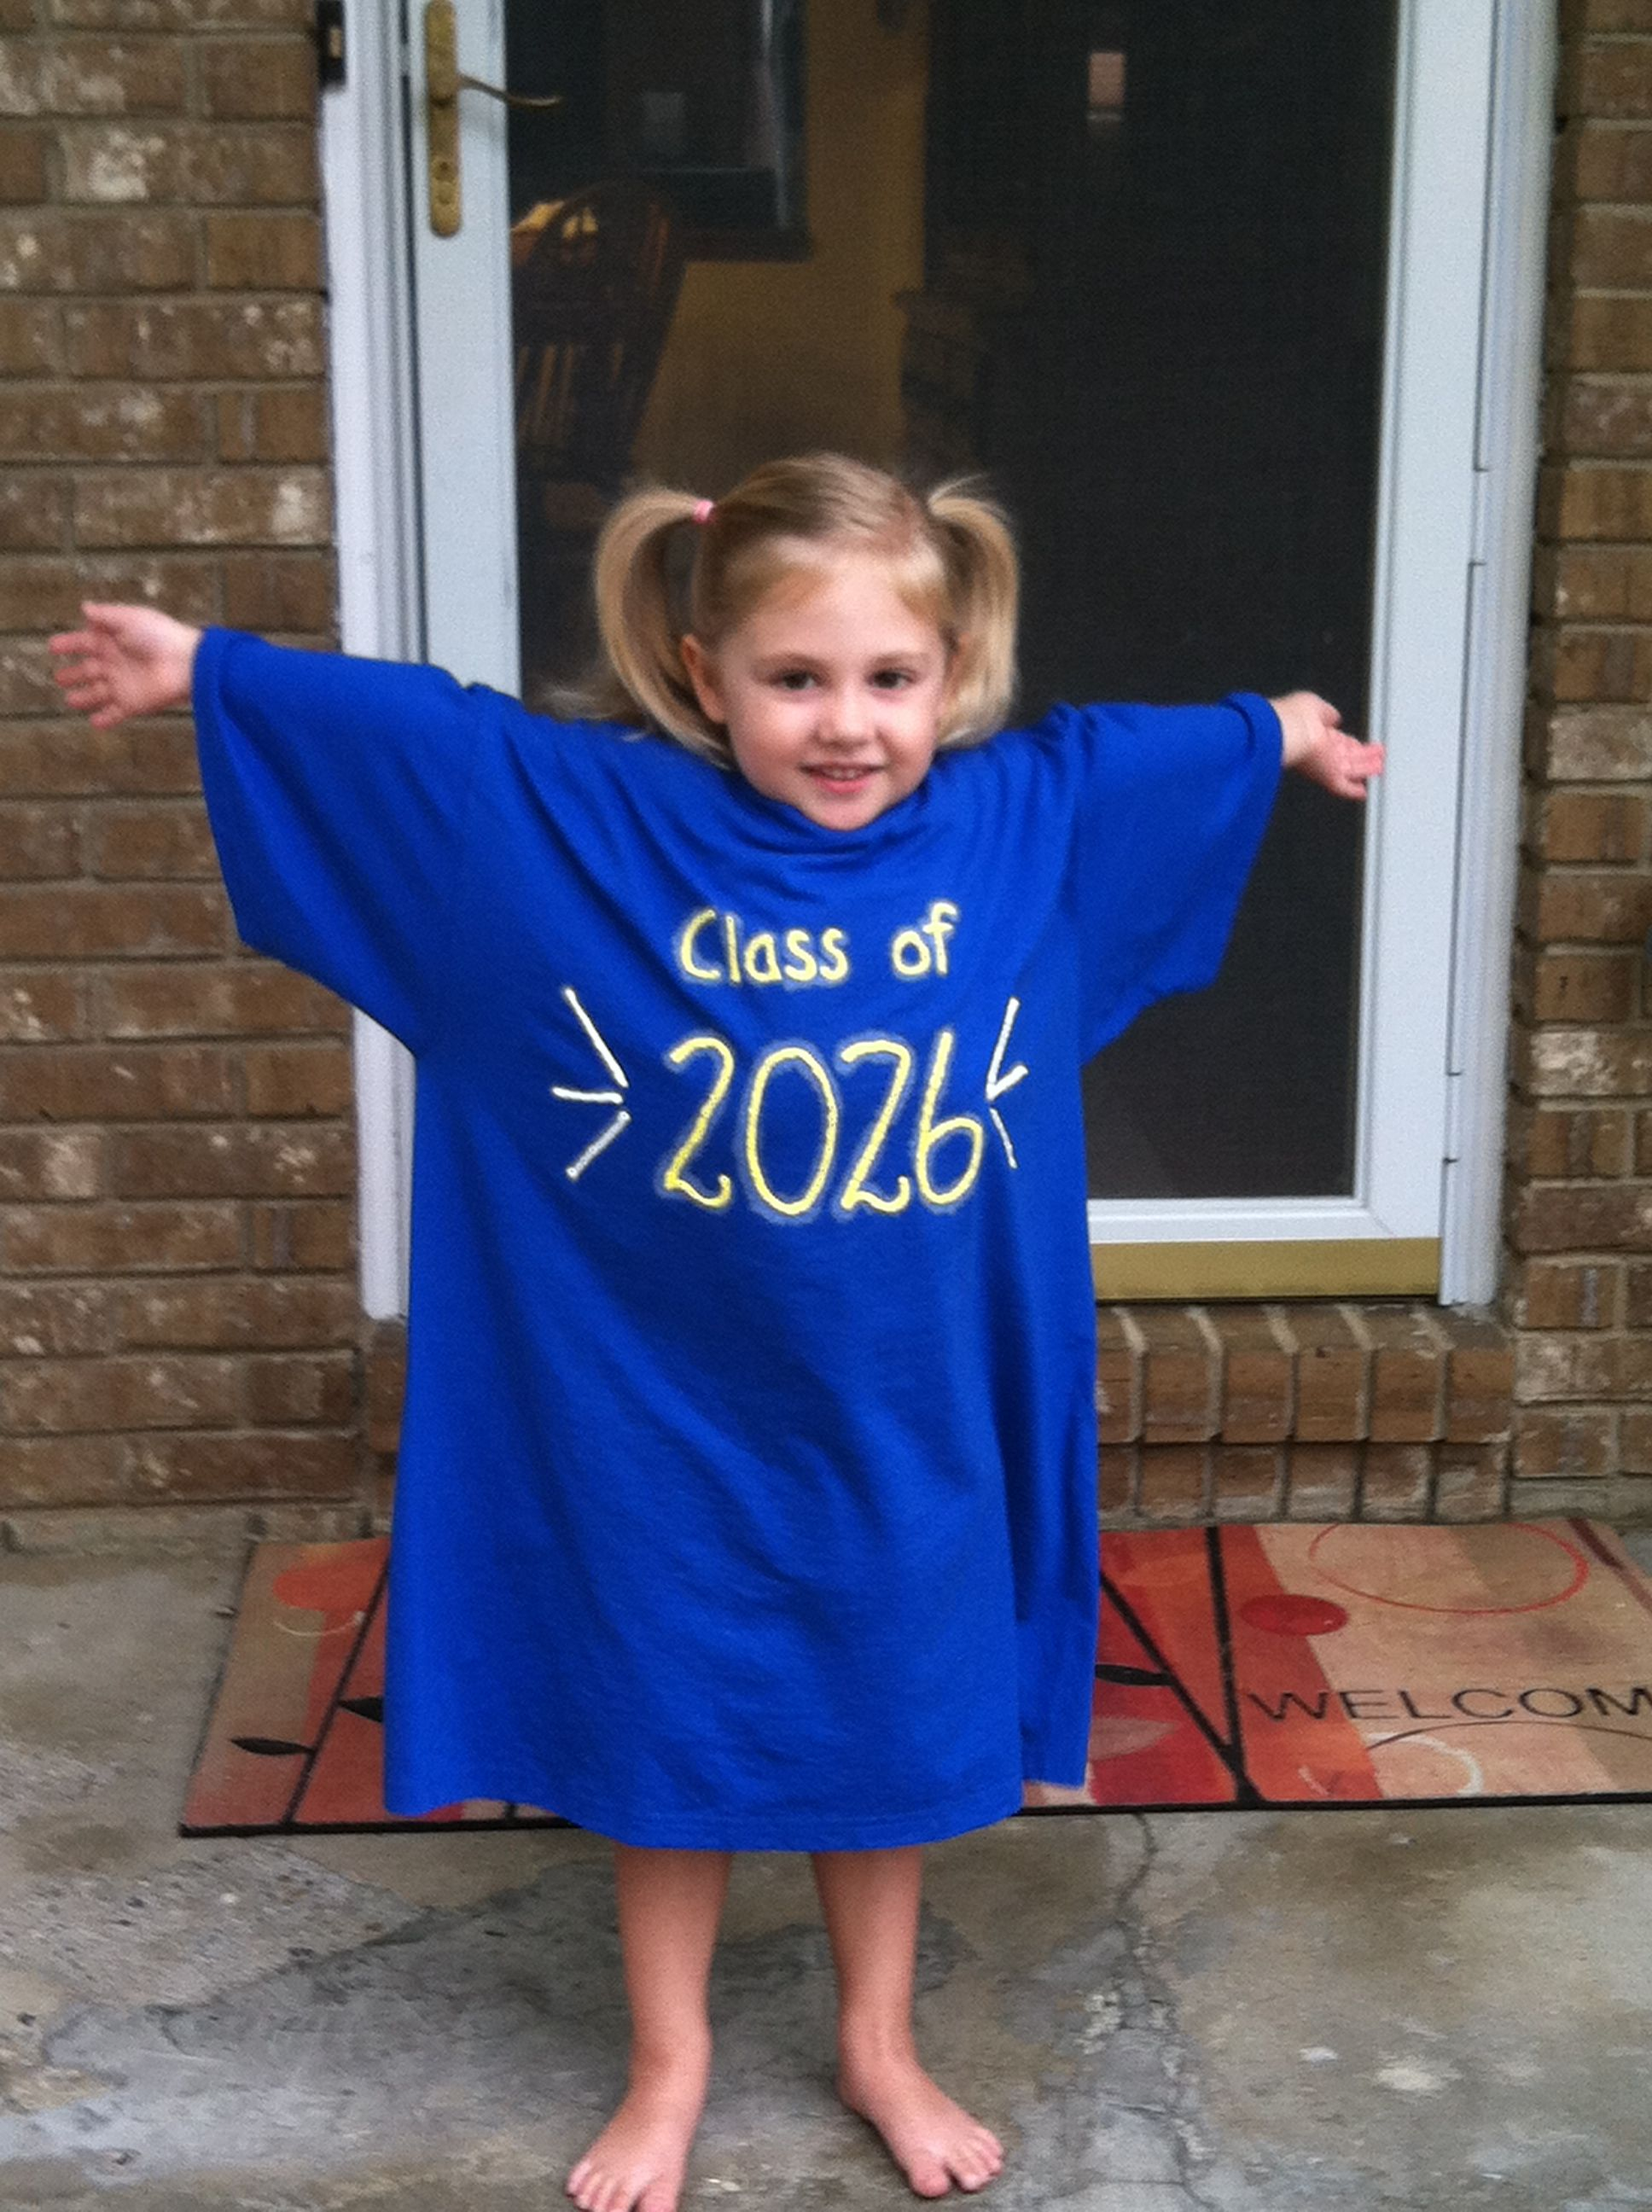 Mary's 1st day of Preschool Class of 2026. Wear every